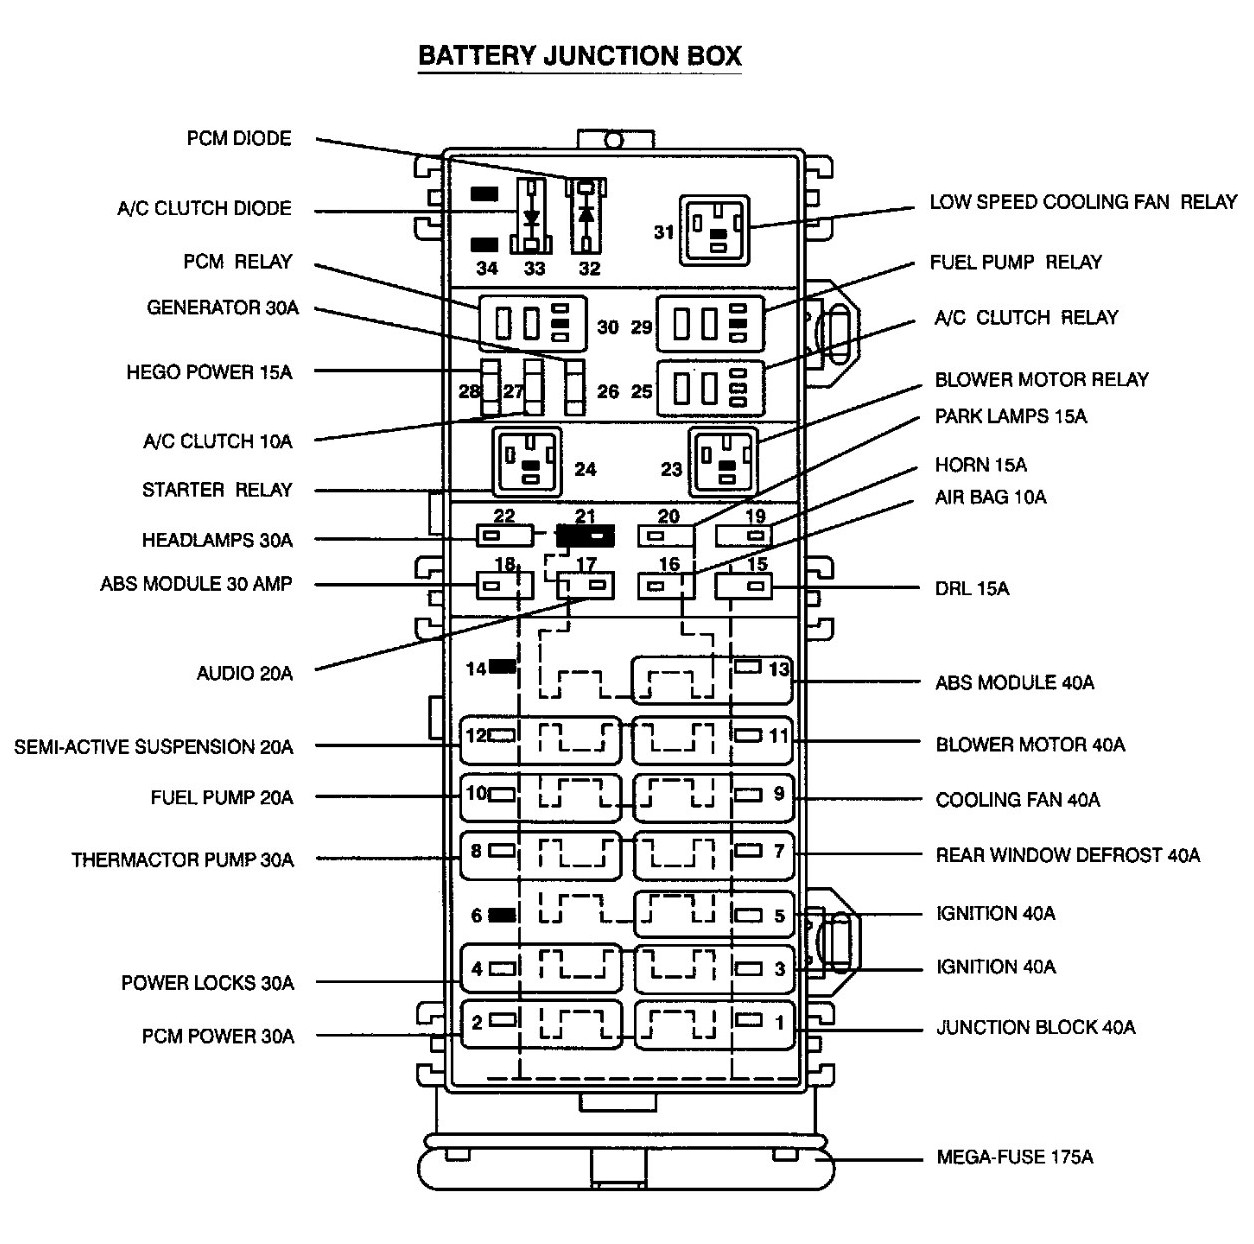 2000 lincoln navigator heater diagram html